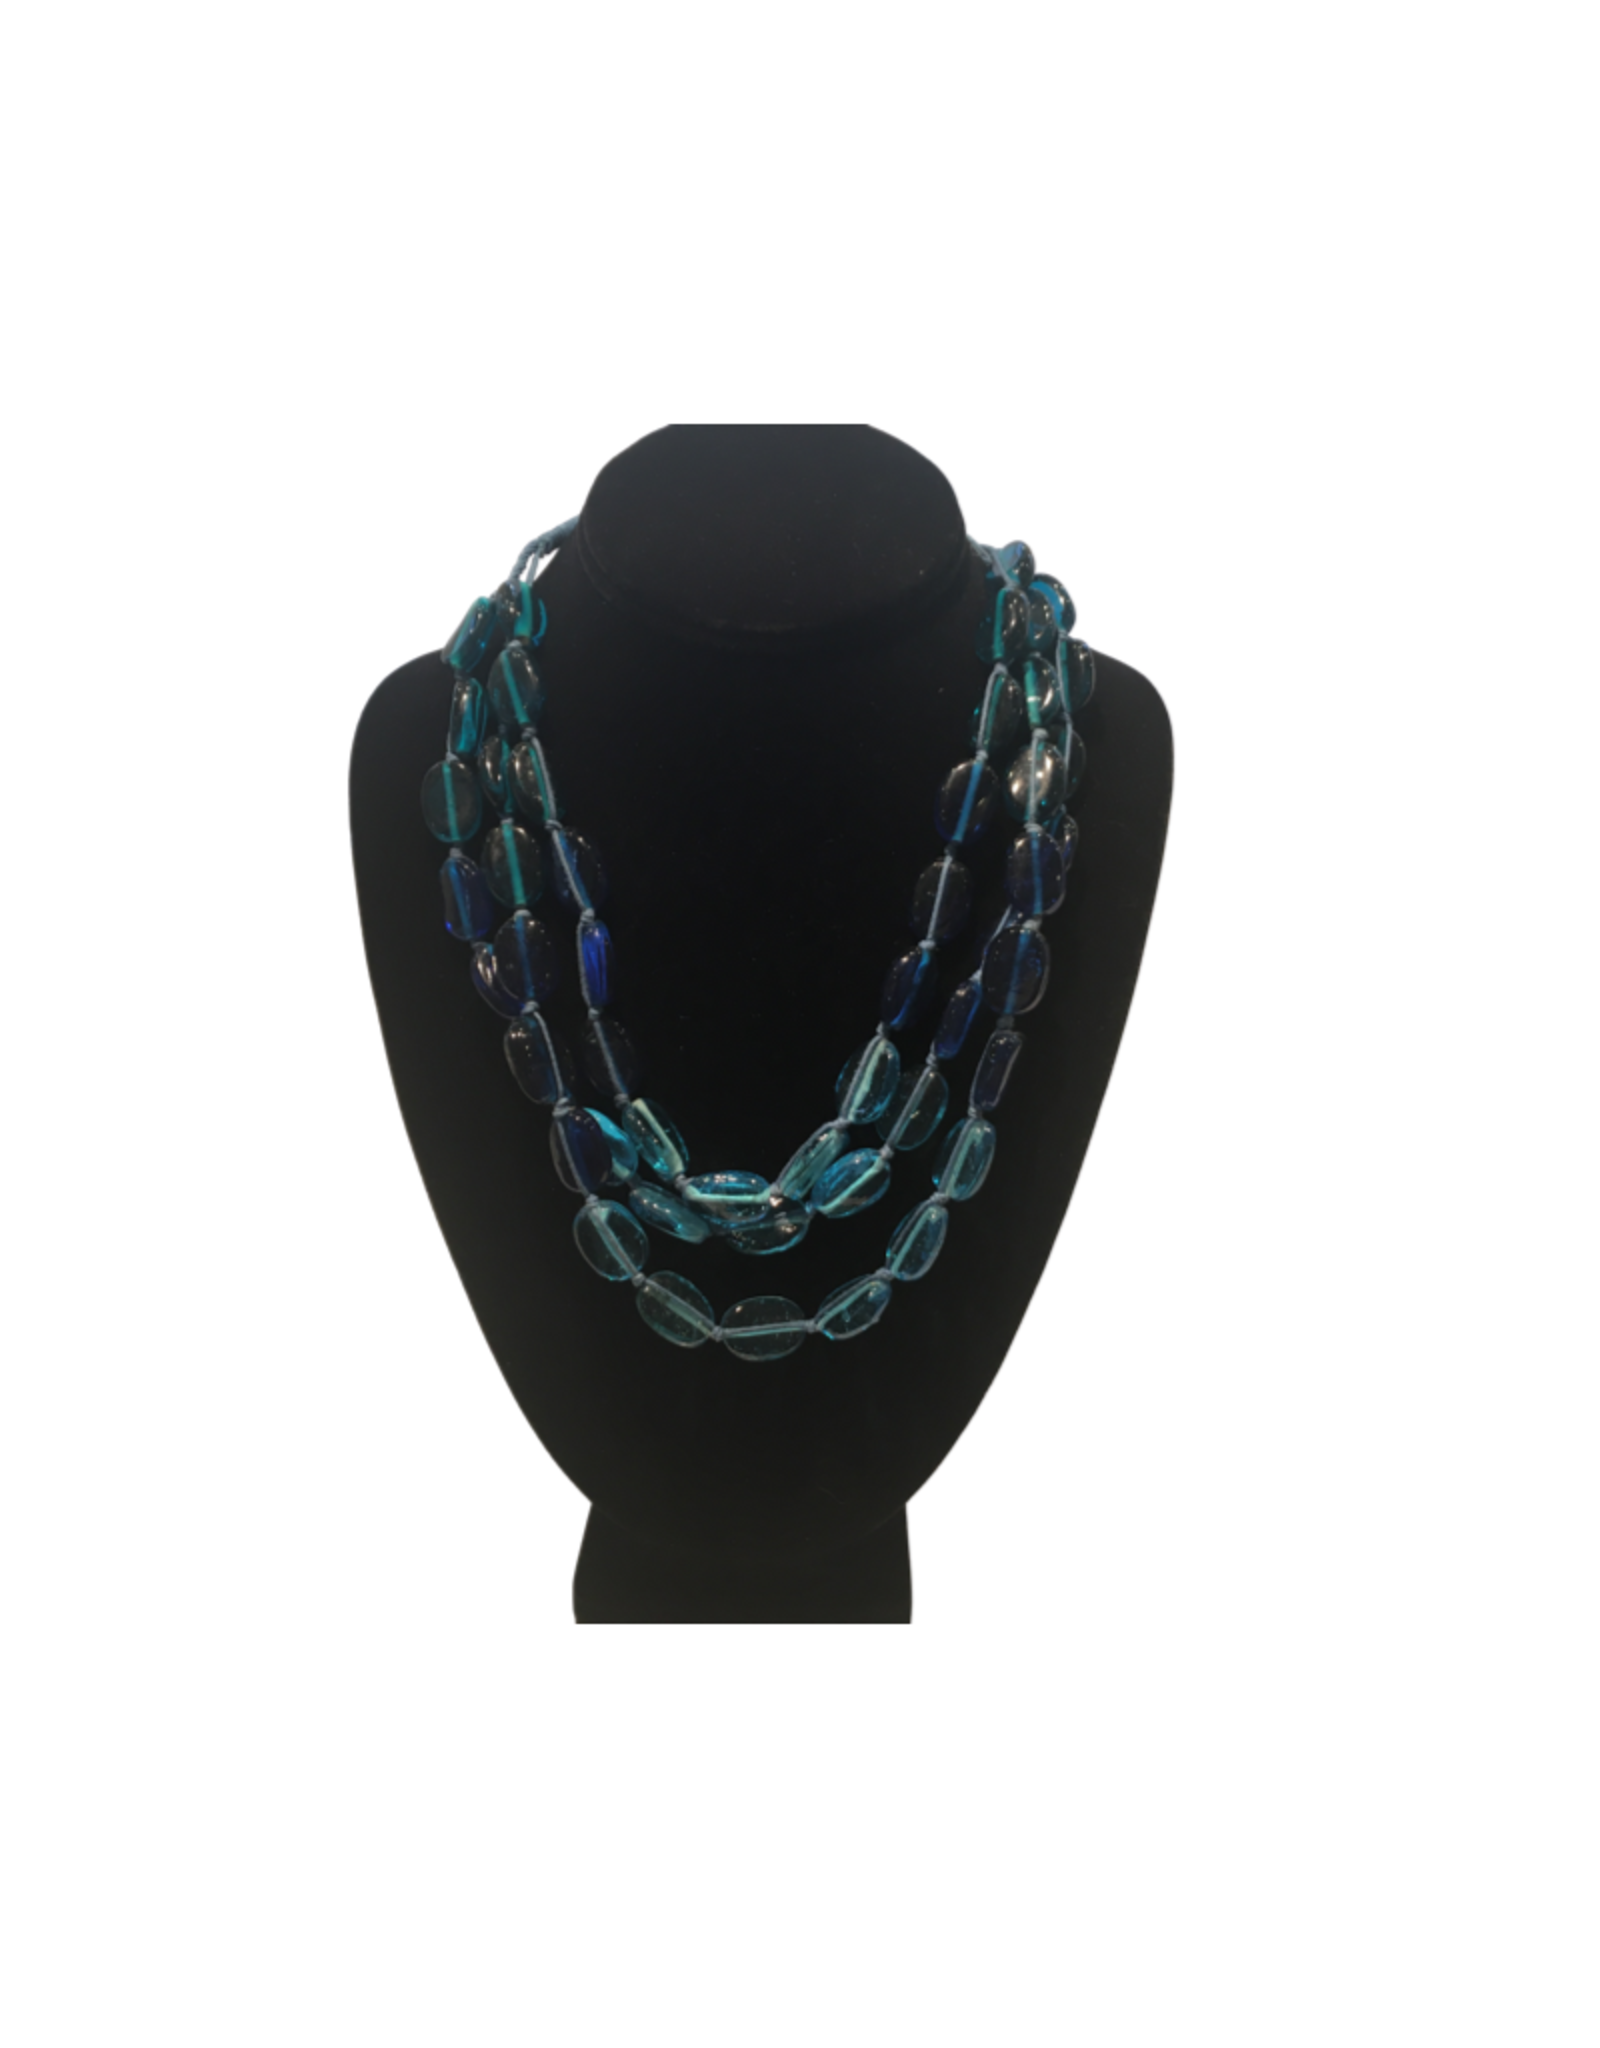 Ten Thousand Villages Flowing River Beaded Necklace